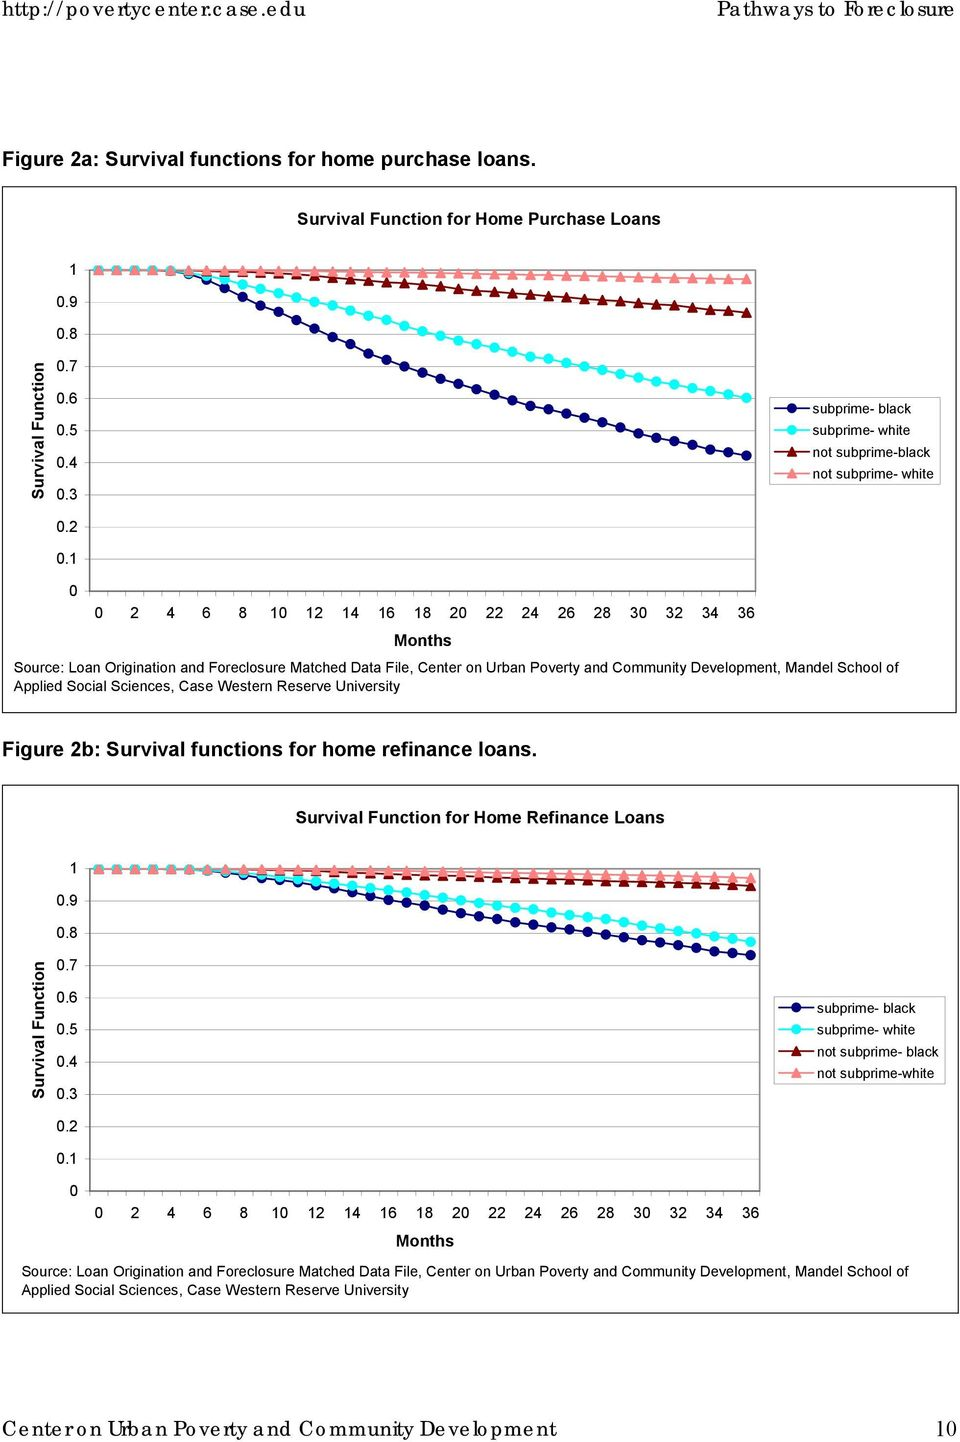 Center on Urban Poverty and Community Development, Mandel School of Applied Social Sciences, Case Western Reserve University Figure 2b: Survival functions for home refinance loans.